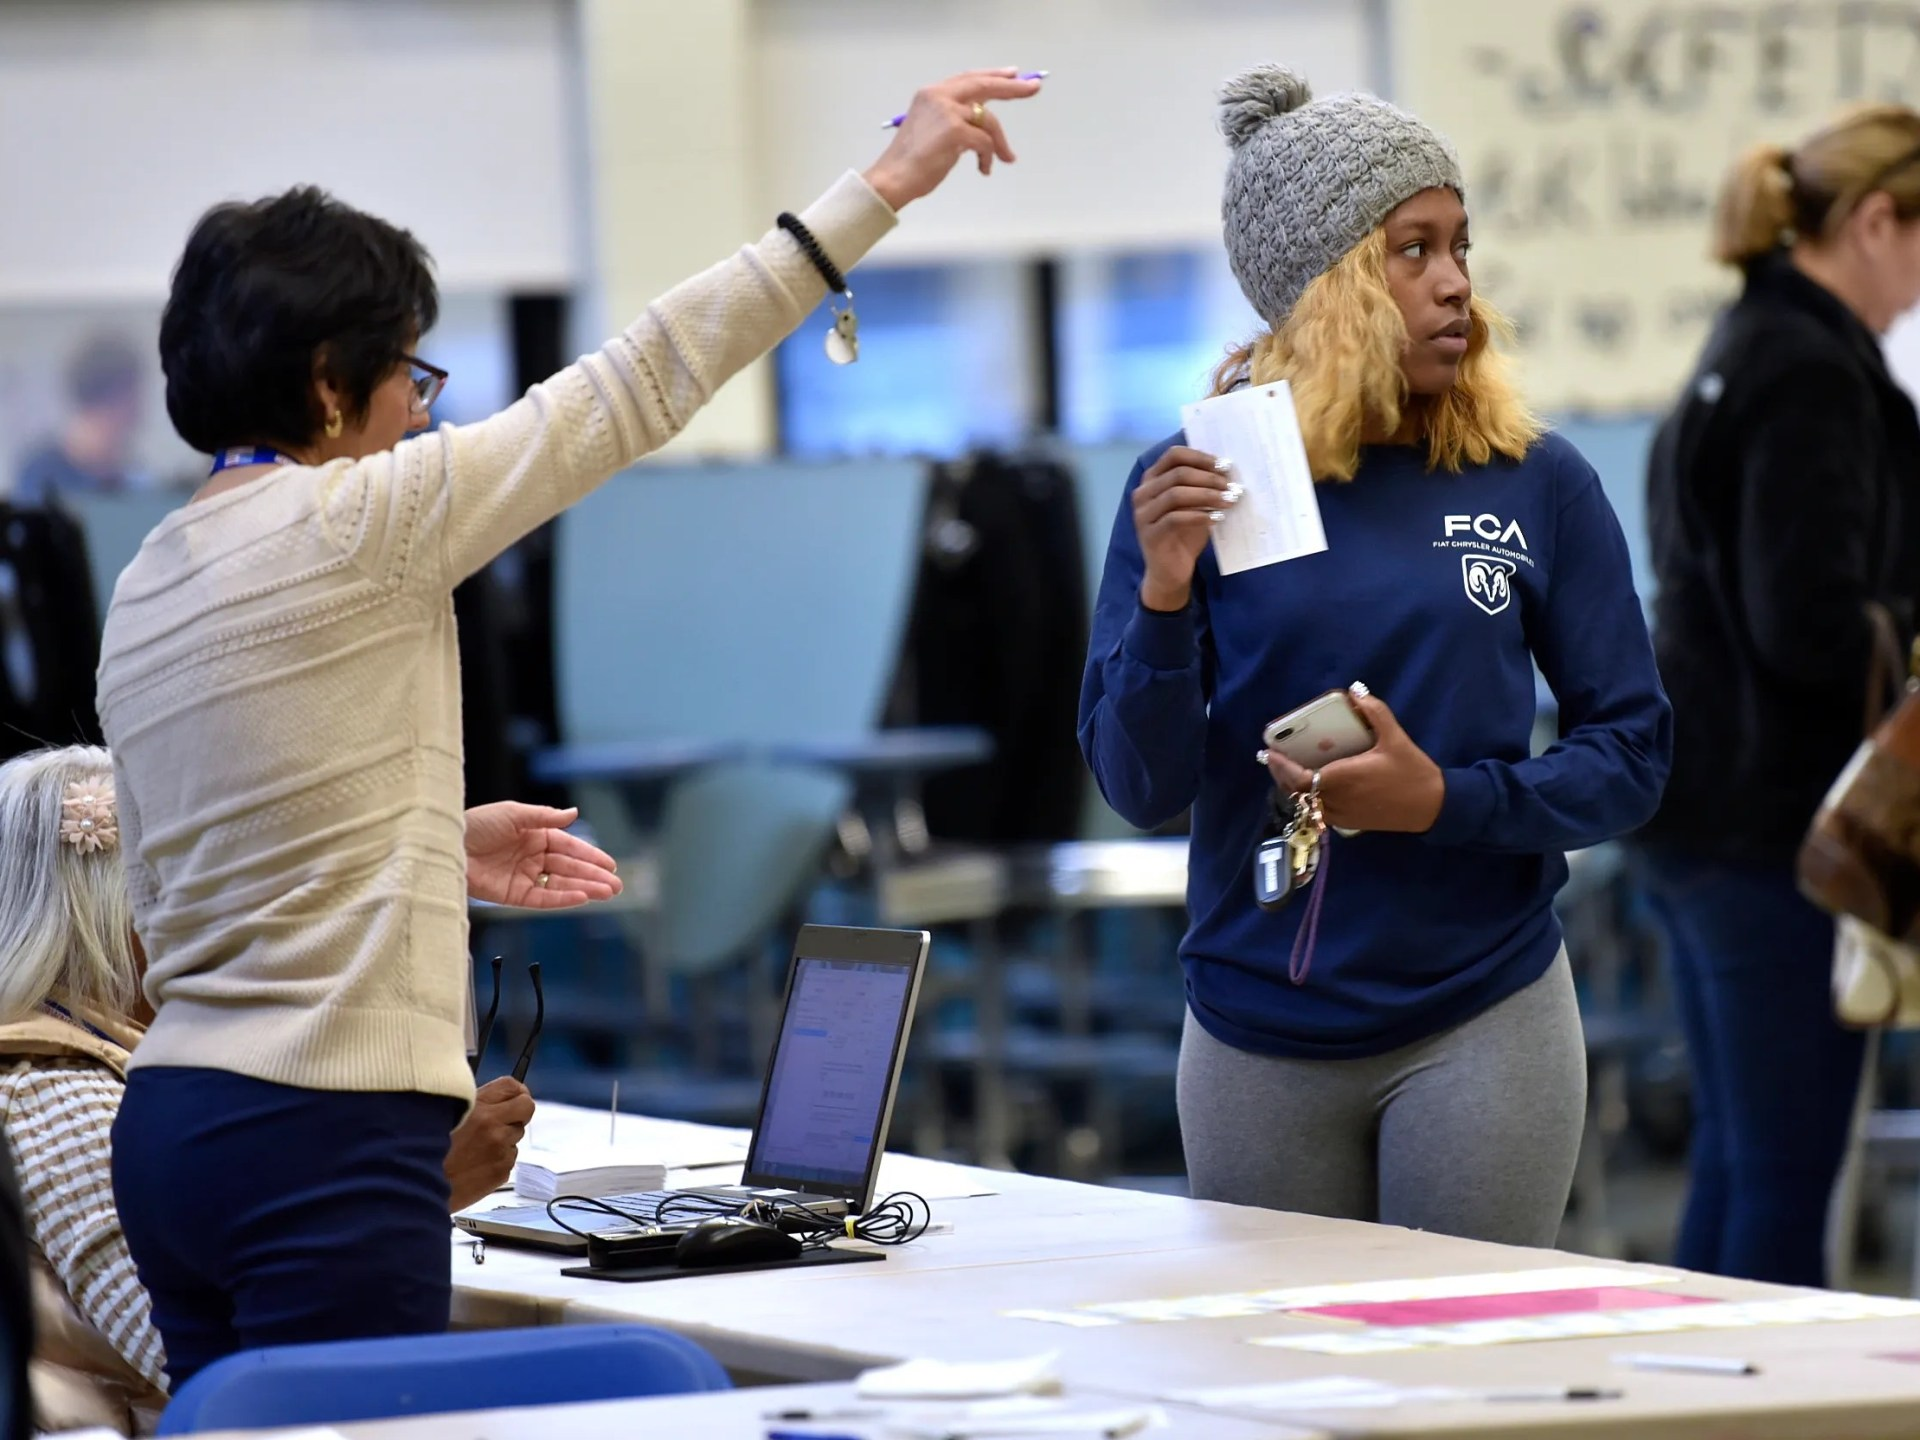 A precinct worker instructs Samara Brame, right, of Macomb Township where to get her ballot in the cafeteria at Ojibwa Elementary School. Brame is a UAW Local 140 member who builds Fiat Chrysler automobiles.